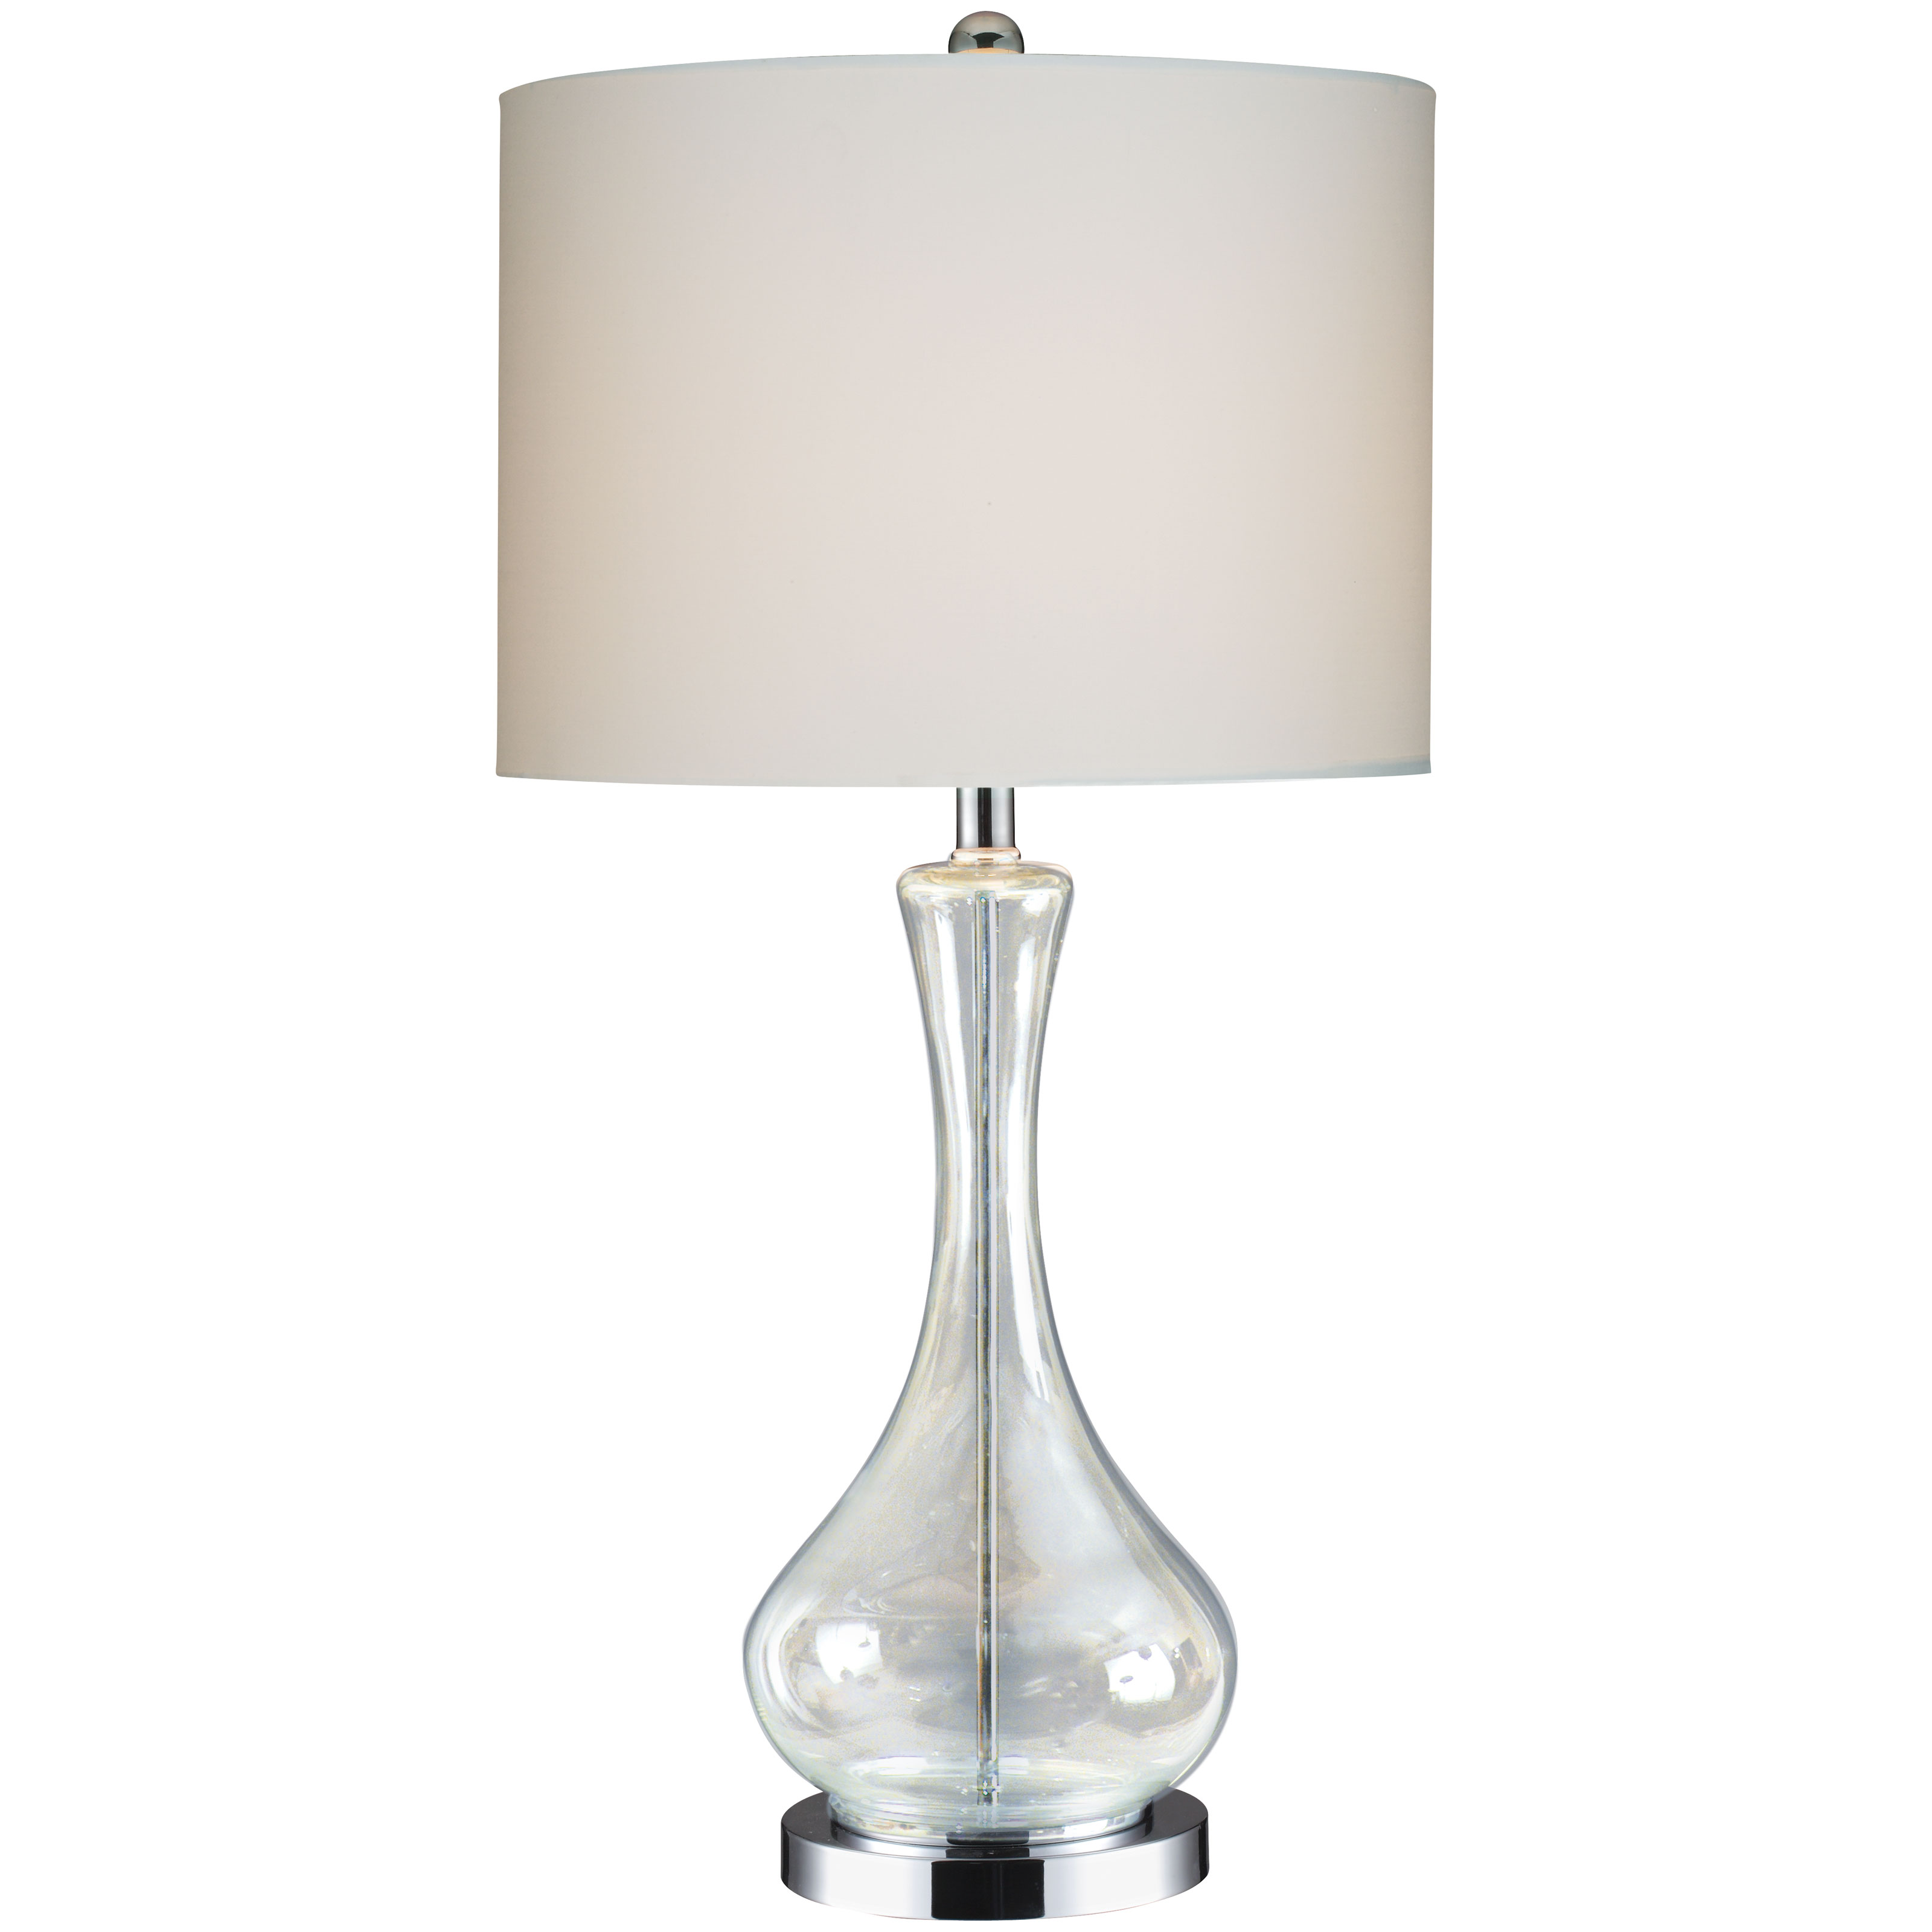 g2084 chrome clear glass table lamp at hayneedle. Black Bedroom Furniture Sets. Home Design Ideas